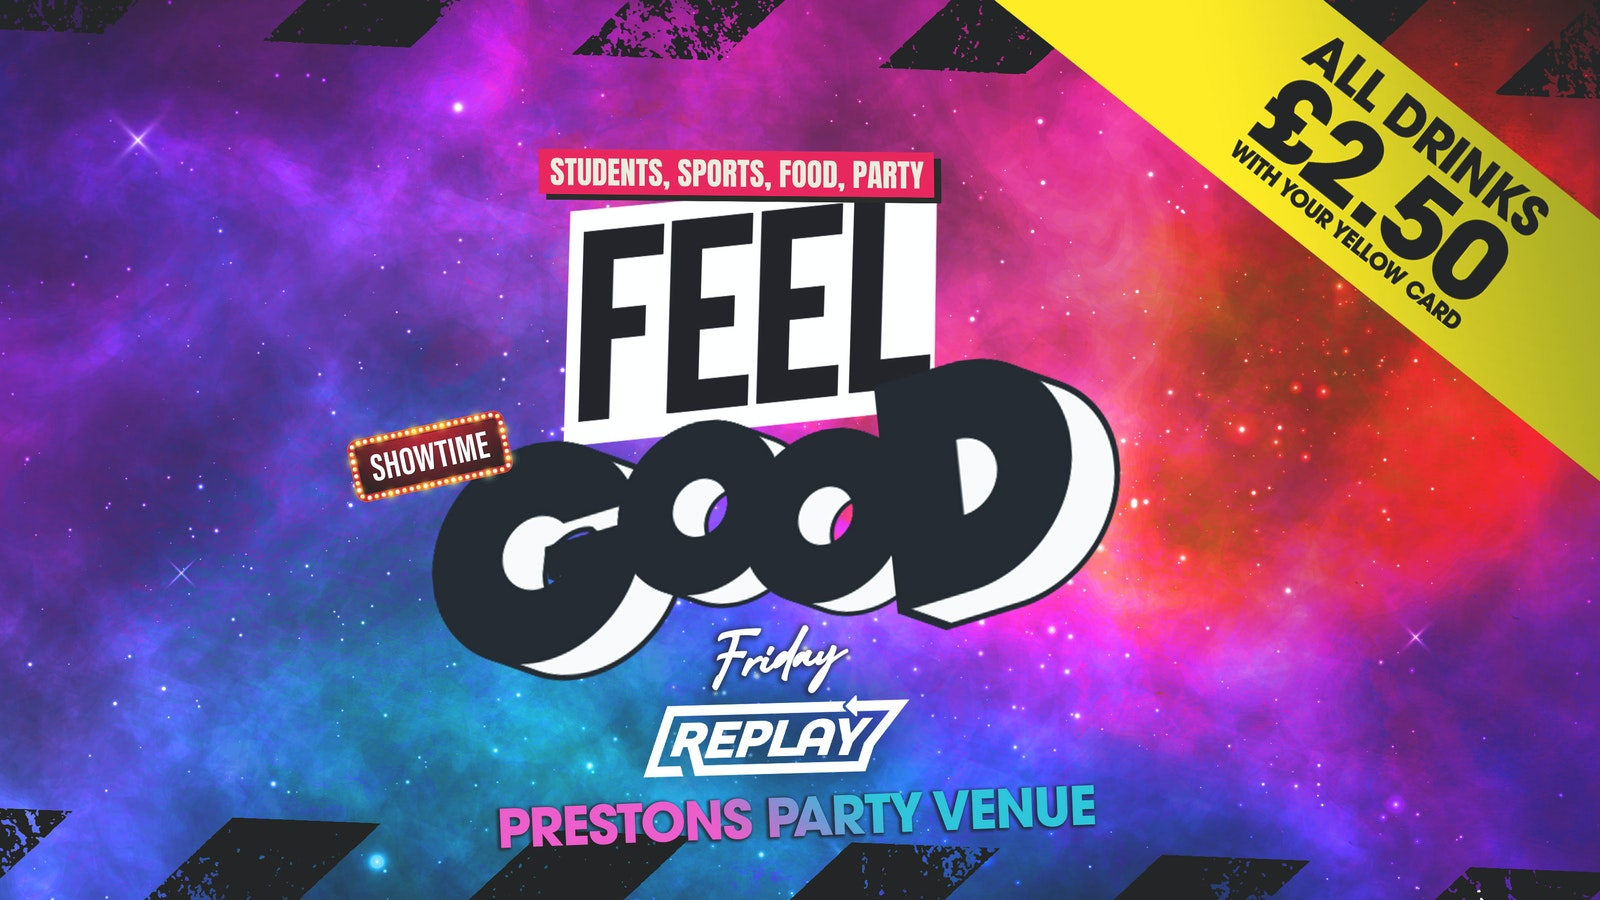 FEEL GOOD – Prestons Party Central – Every Friday